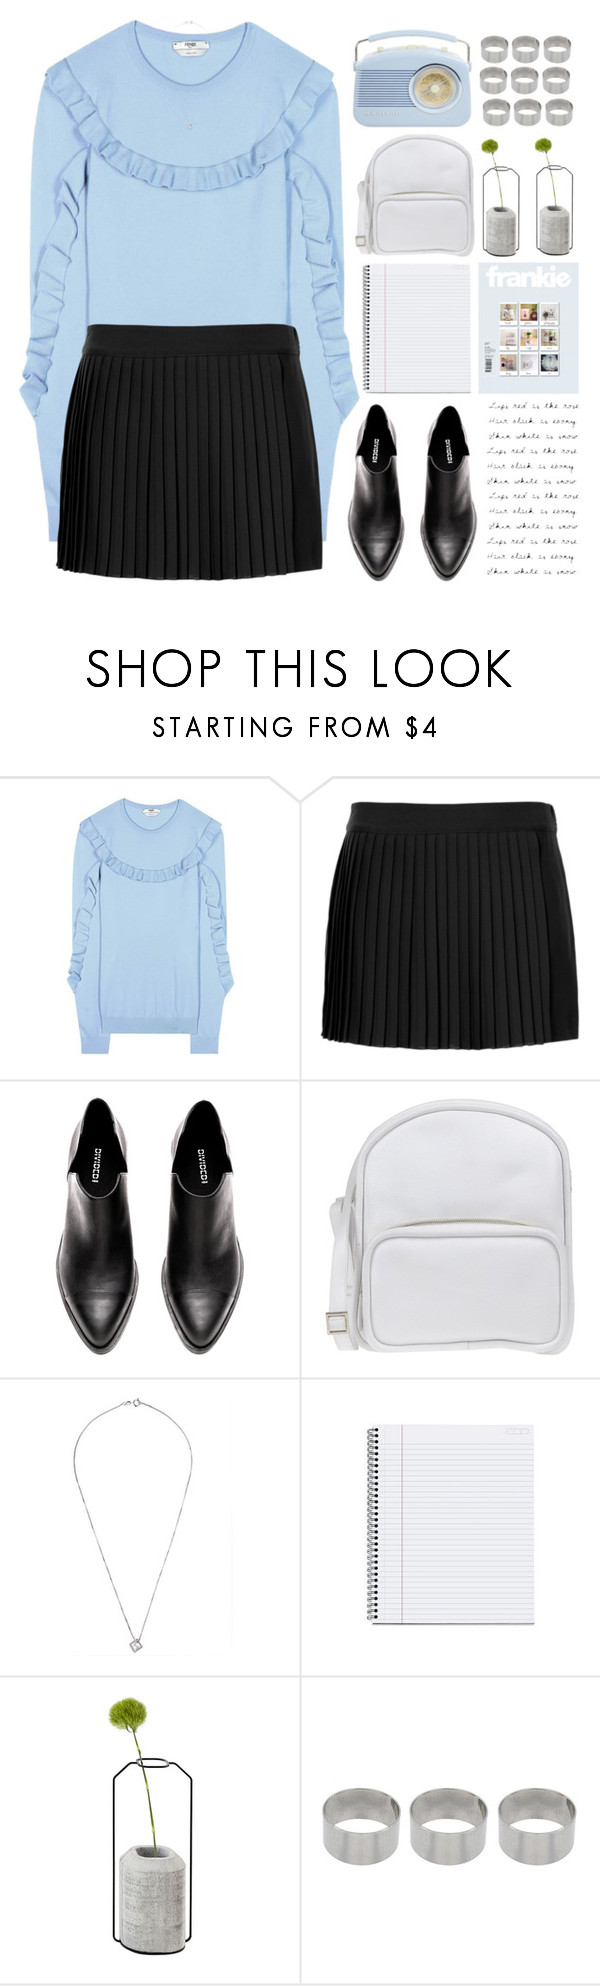 """Untitled #1008"" by chantellehofland ❤ liked on Polyvore featuring Fendi, Topshop, Jil Sander Navy, Spécimen Editions and ASOS"